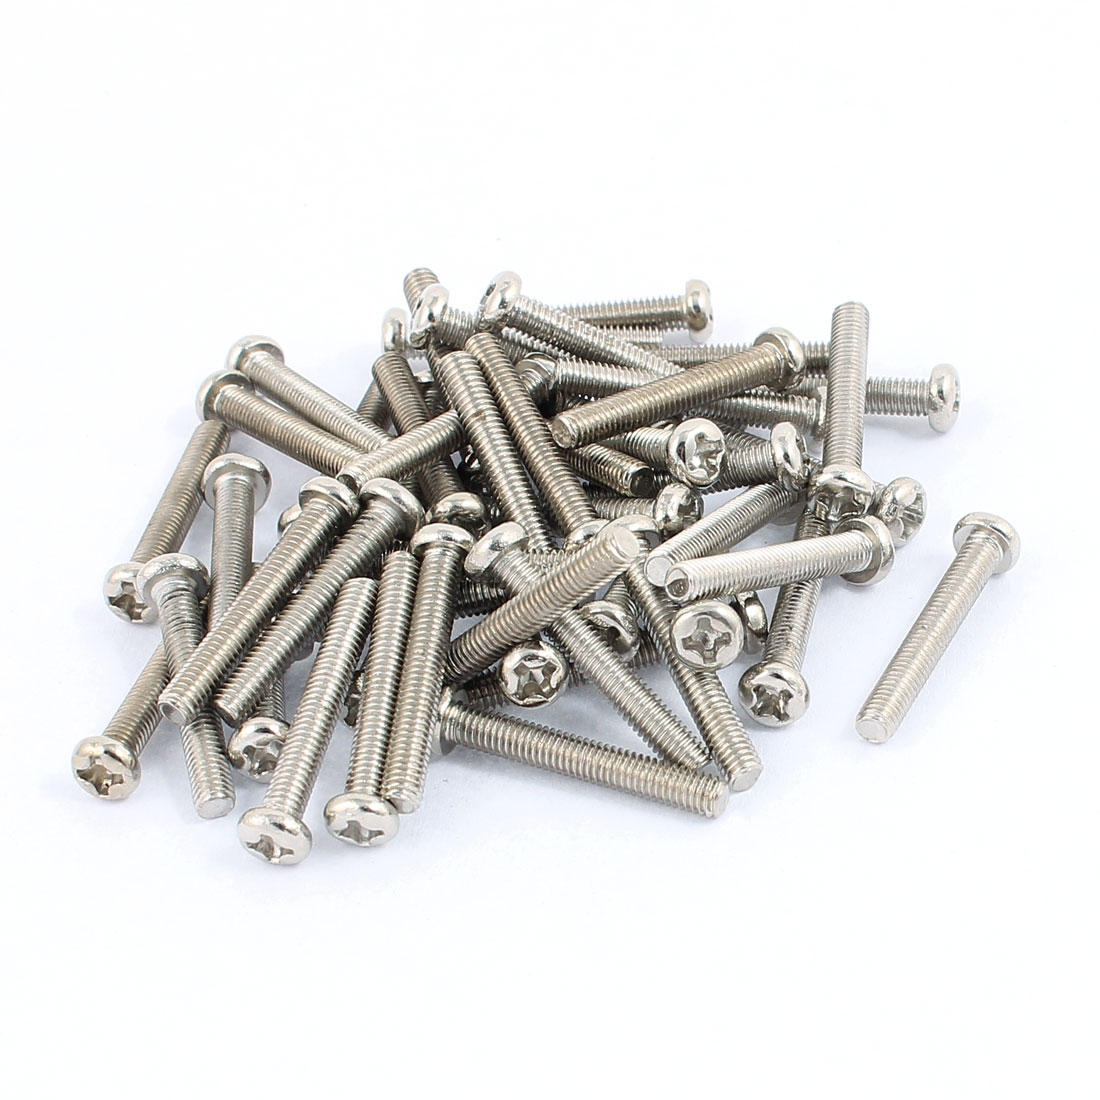 50 Pcs M3x20mm Stainless Steel Round Head Phillips Machine Screws Bolts